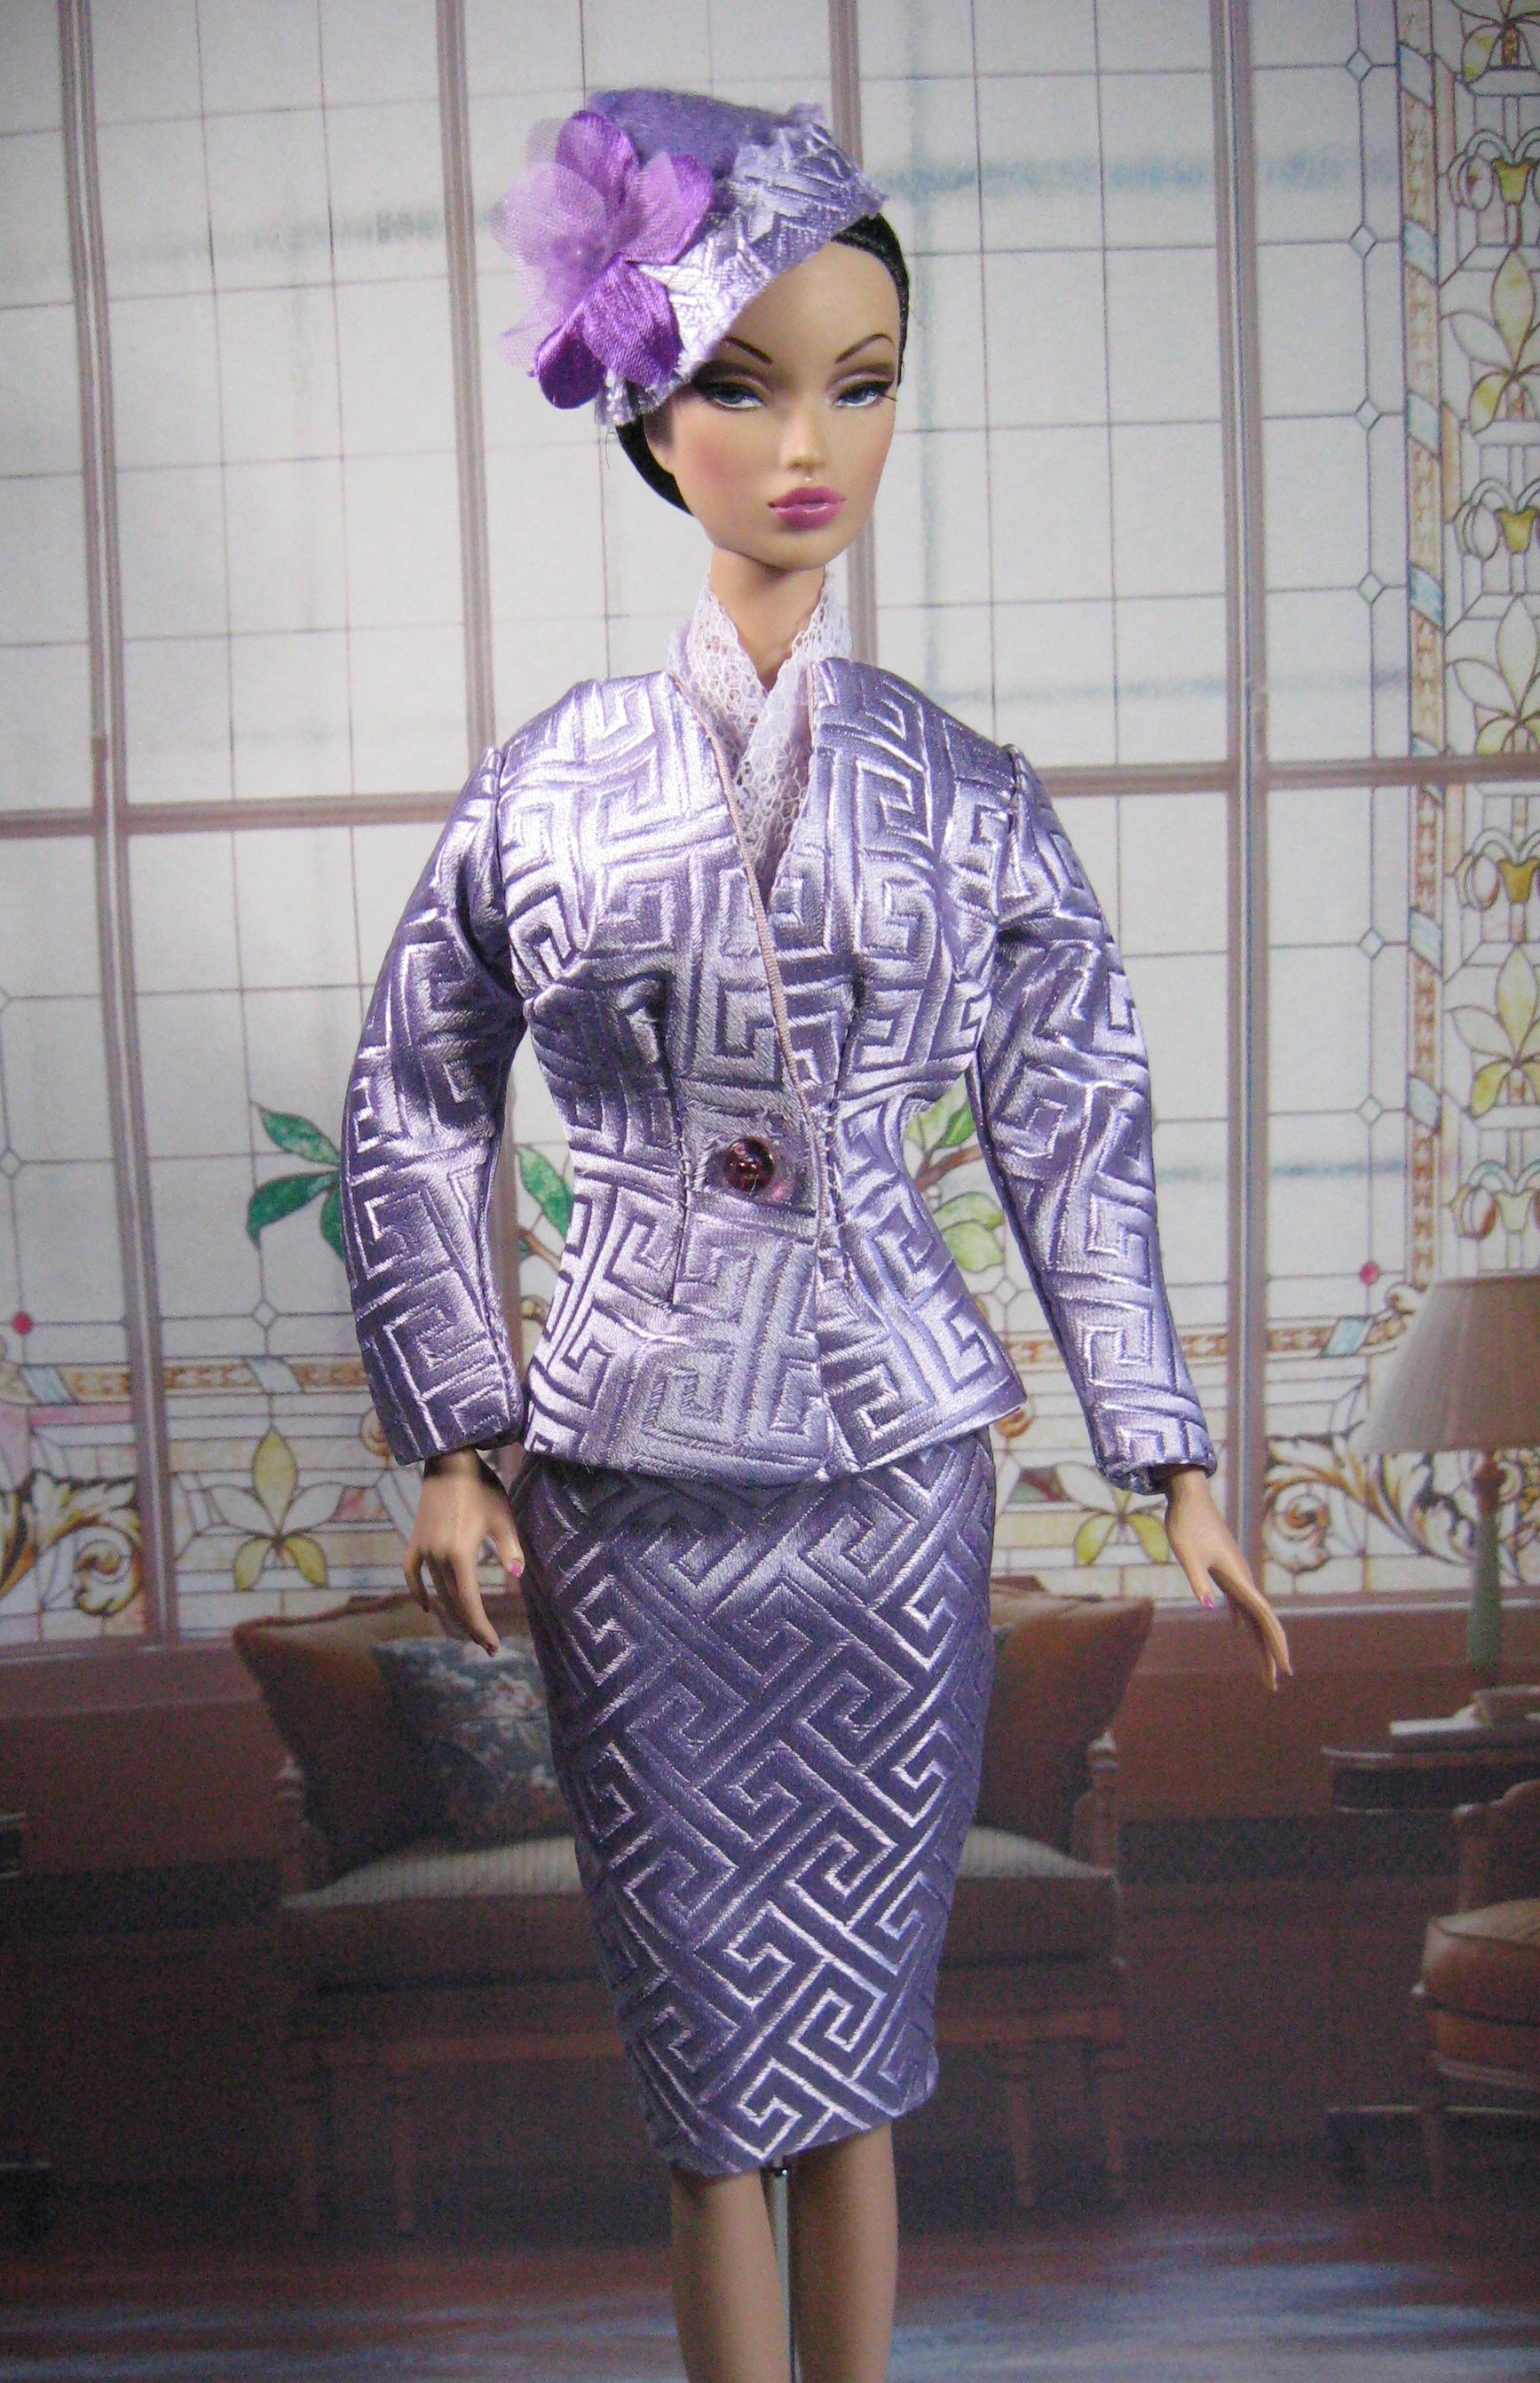 Lavender Silk Brocade two piece suit modeled by Integrity Toy's Victoire.